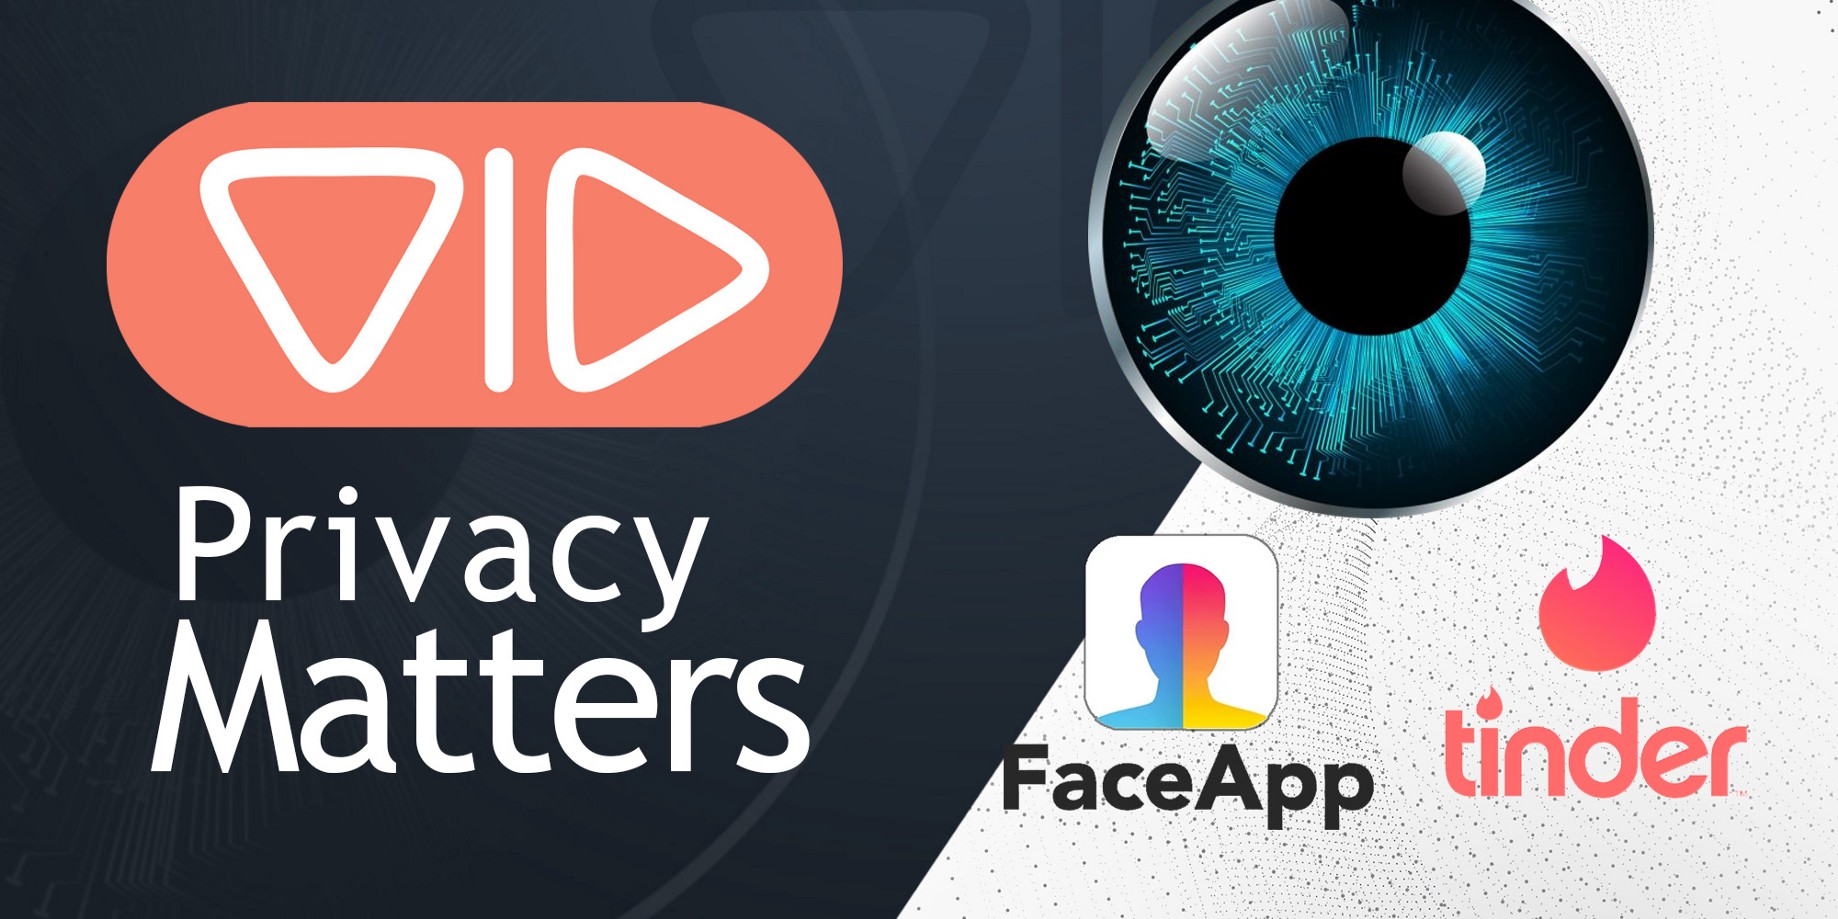 FaceApp and Tinder Cases - Vid Foundation - Medium